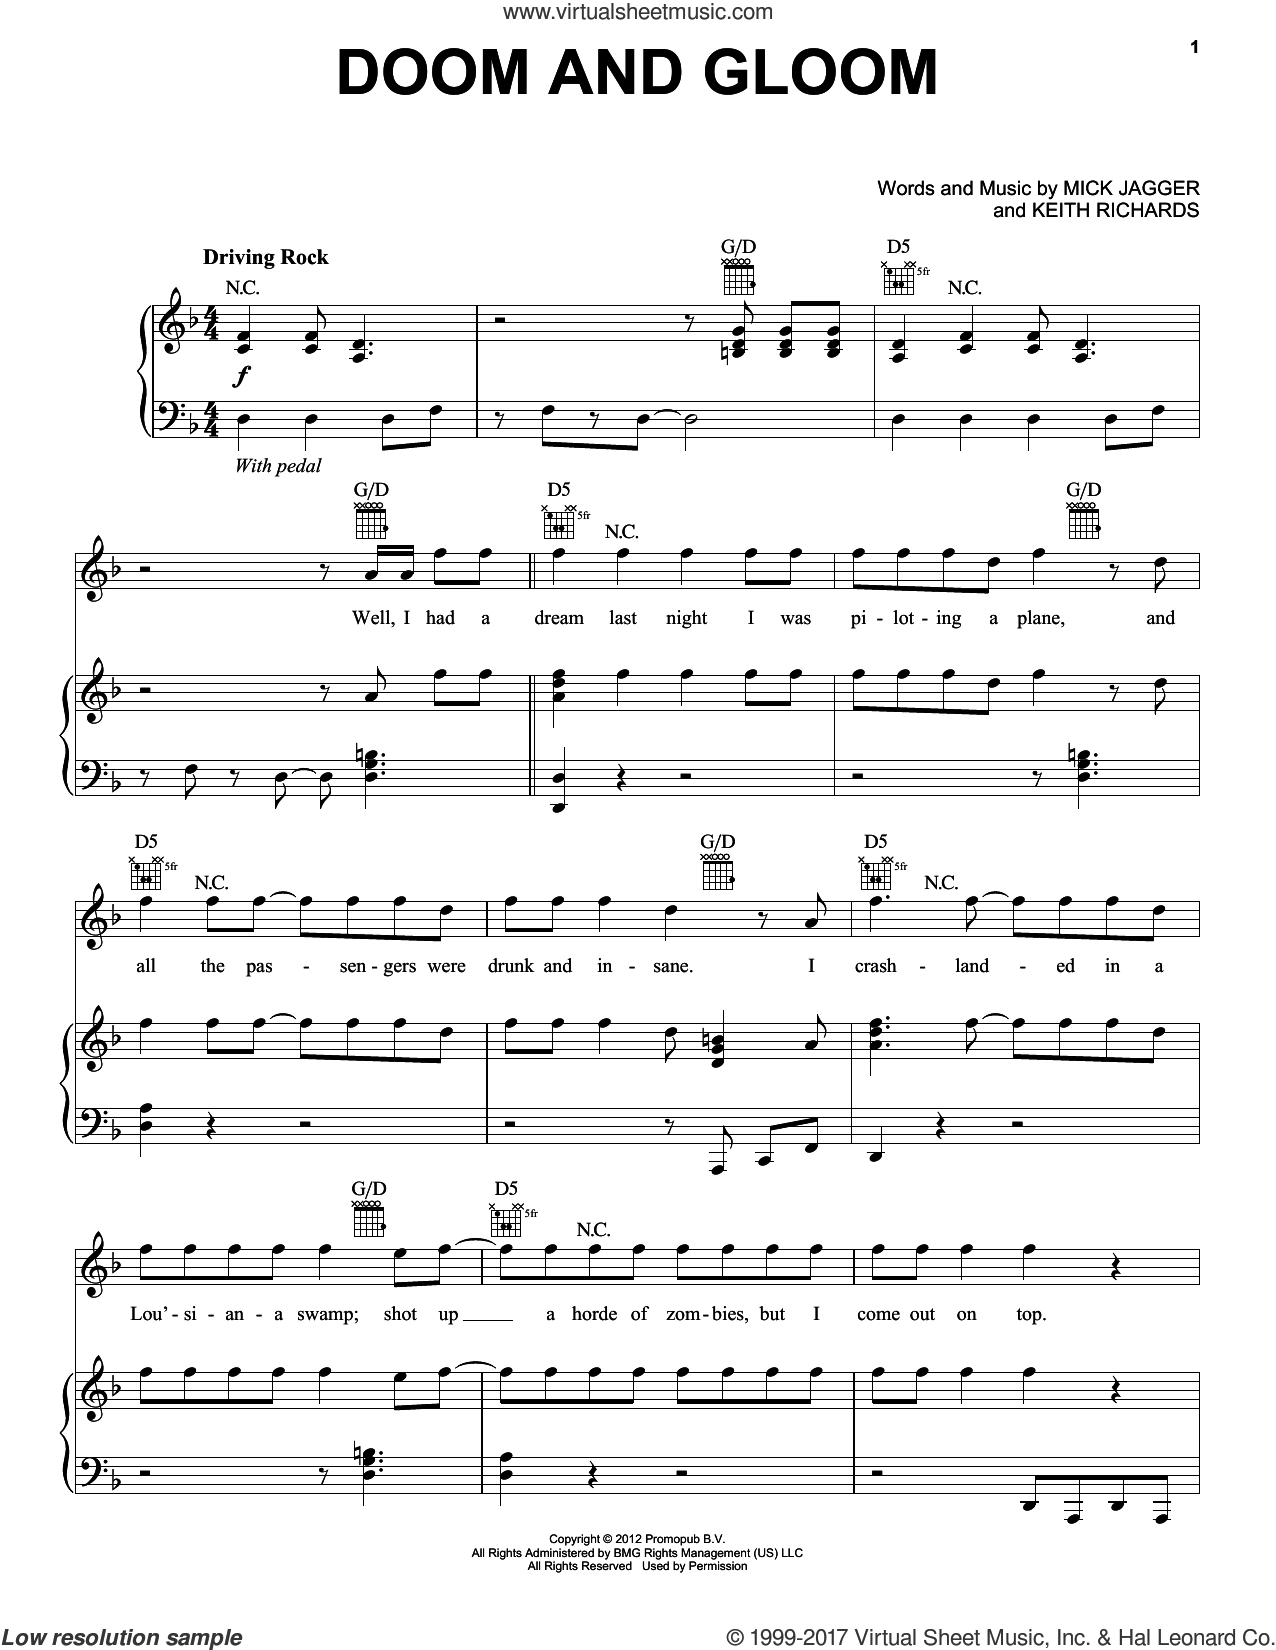 Doom And Gloom sheet music for voice, piano or guitar by Mick Jagger, The Rolling Stones and Keith Richards. Score Image Preview.